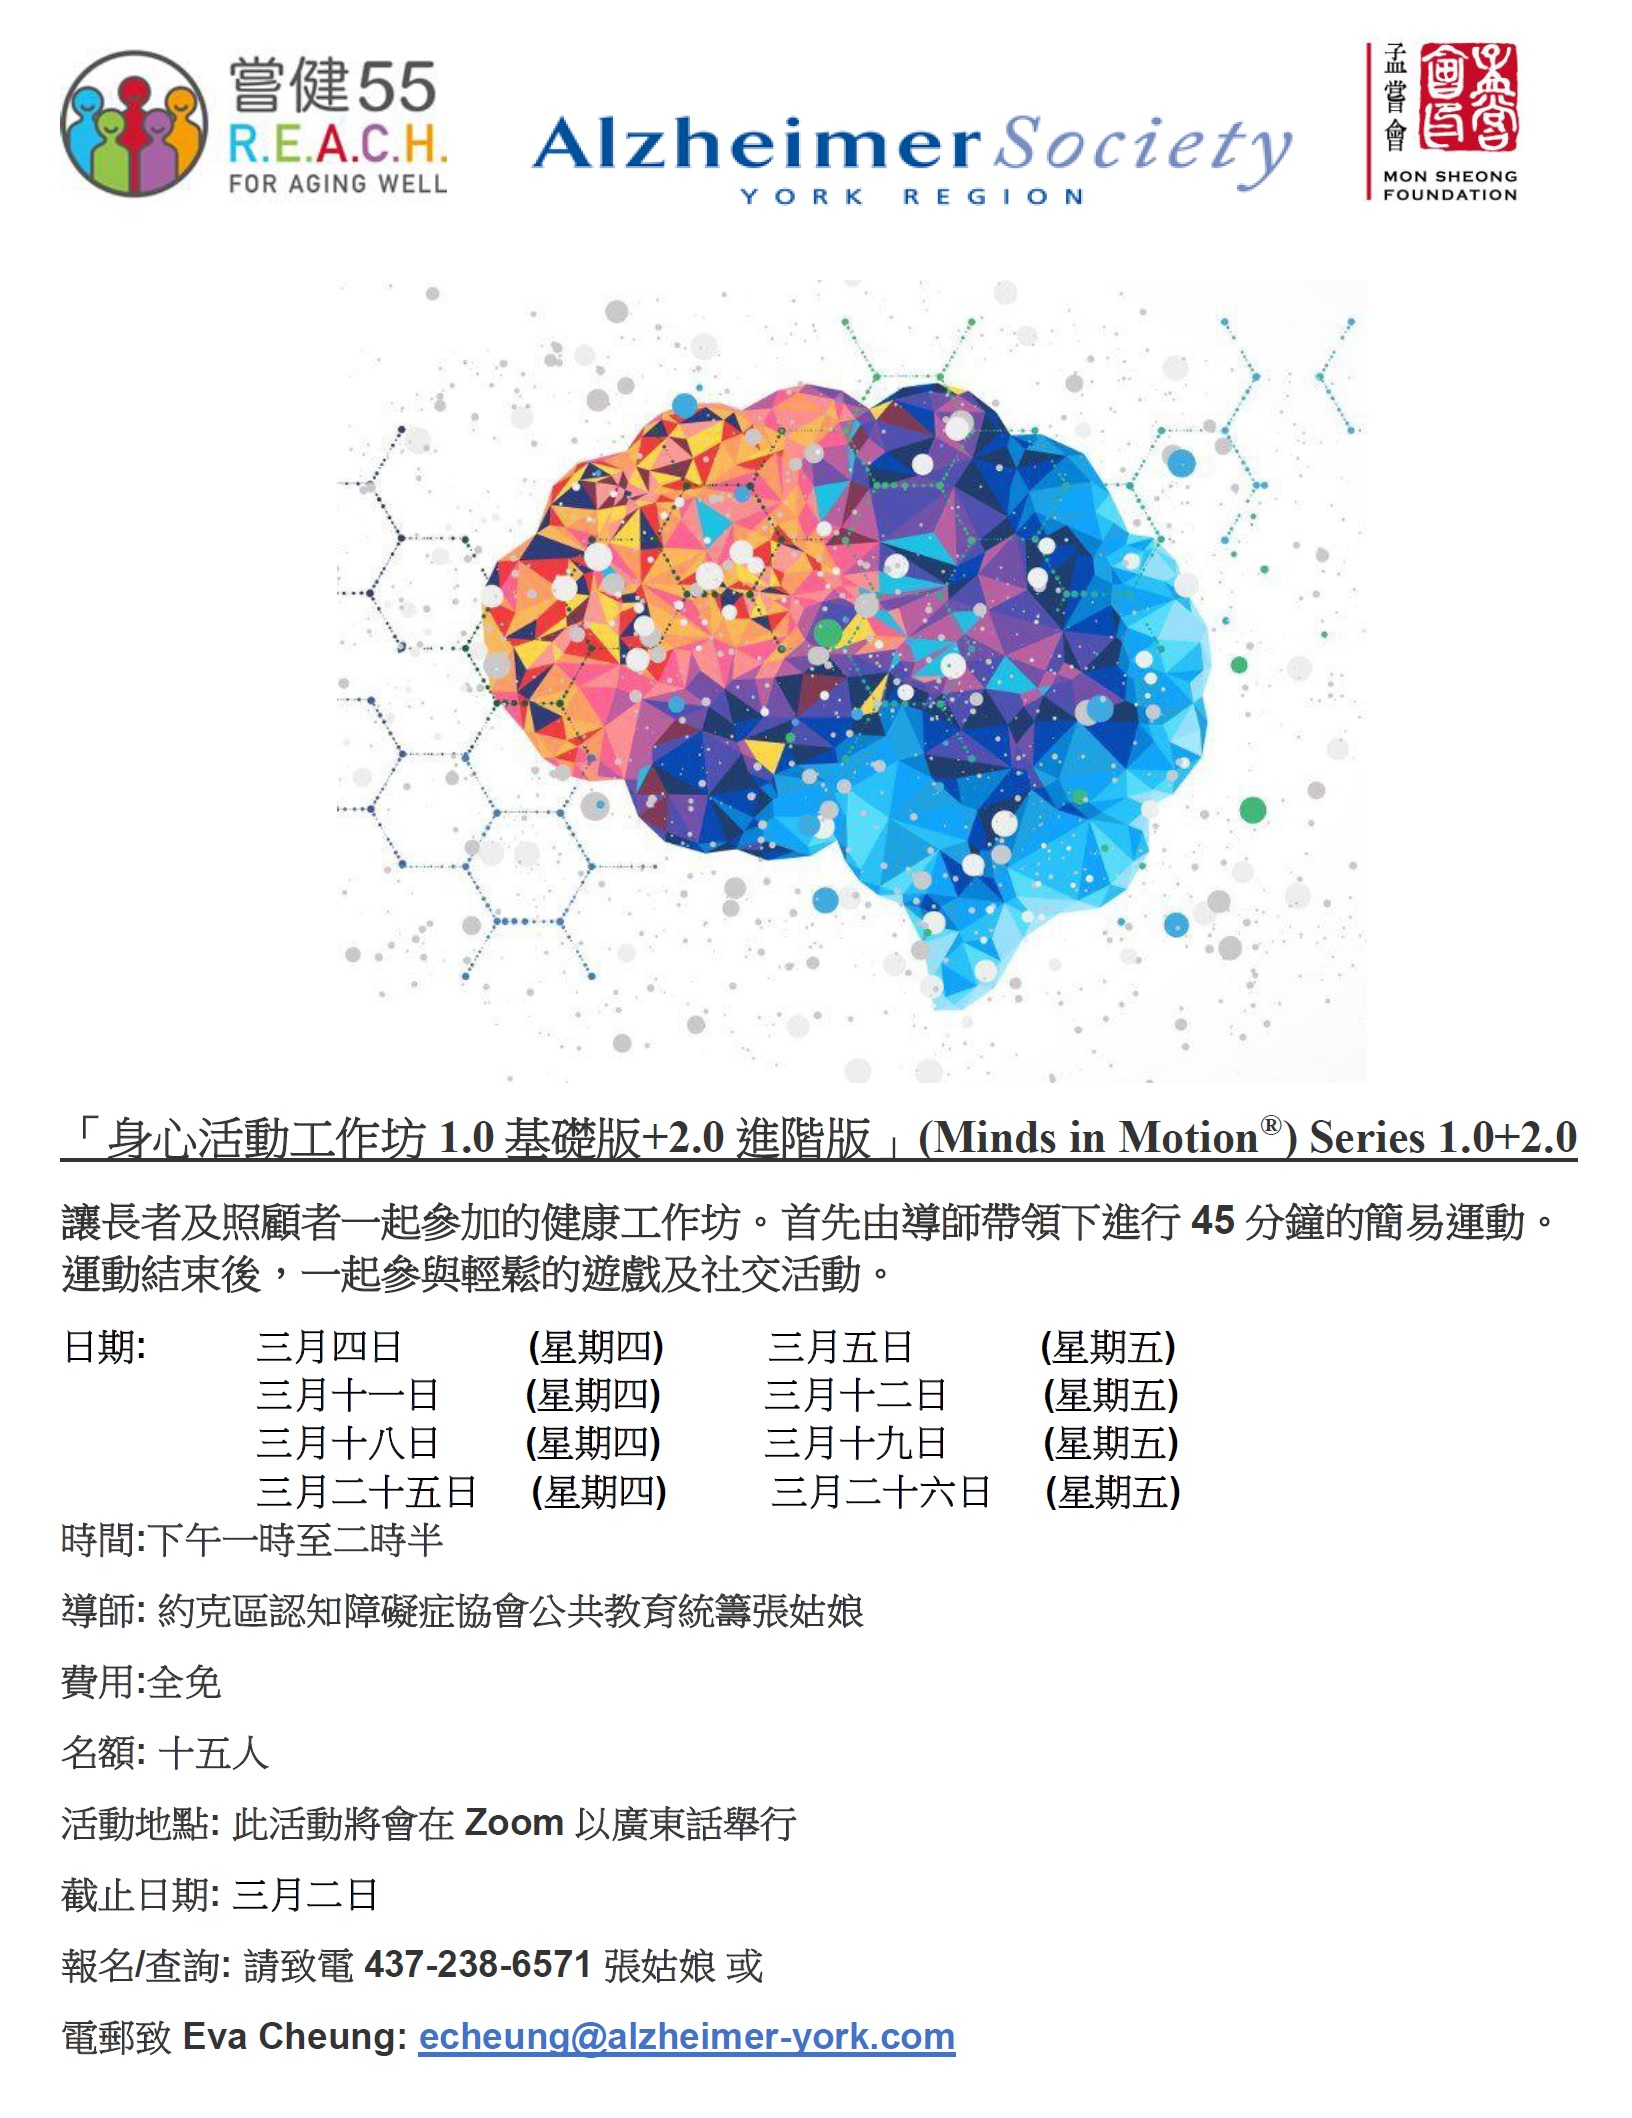 Minds in Motion Series 1.0+2.0 poster